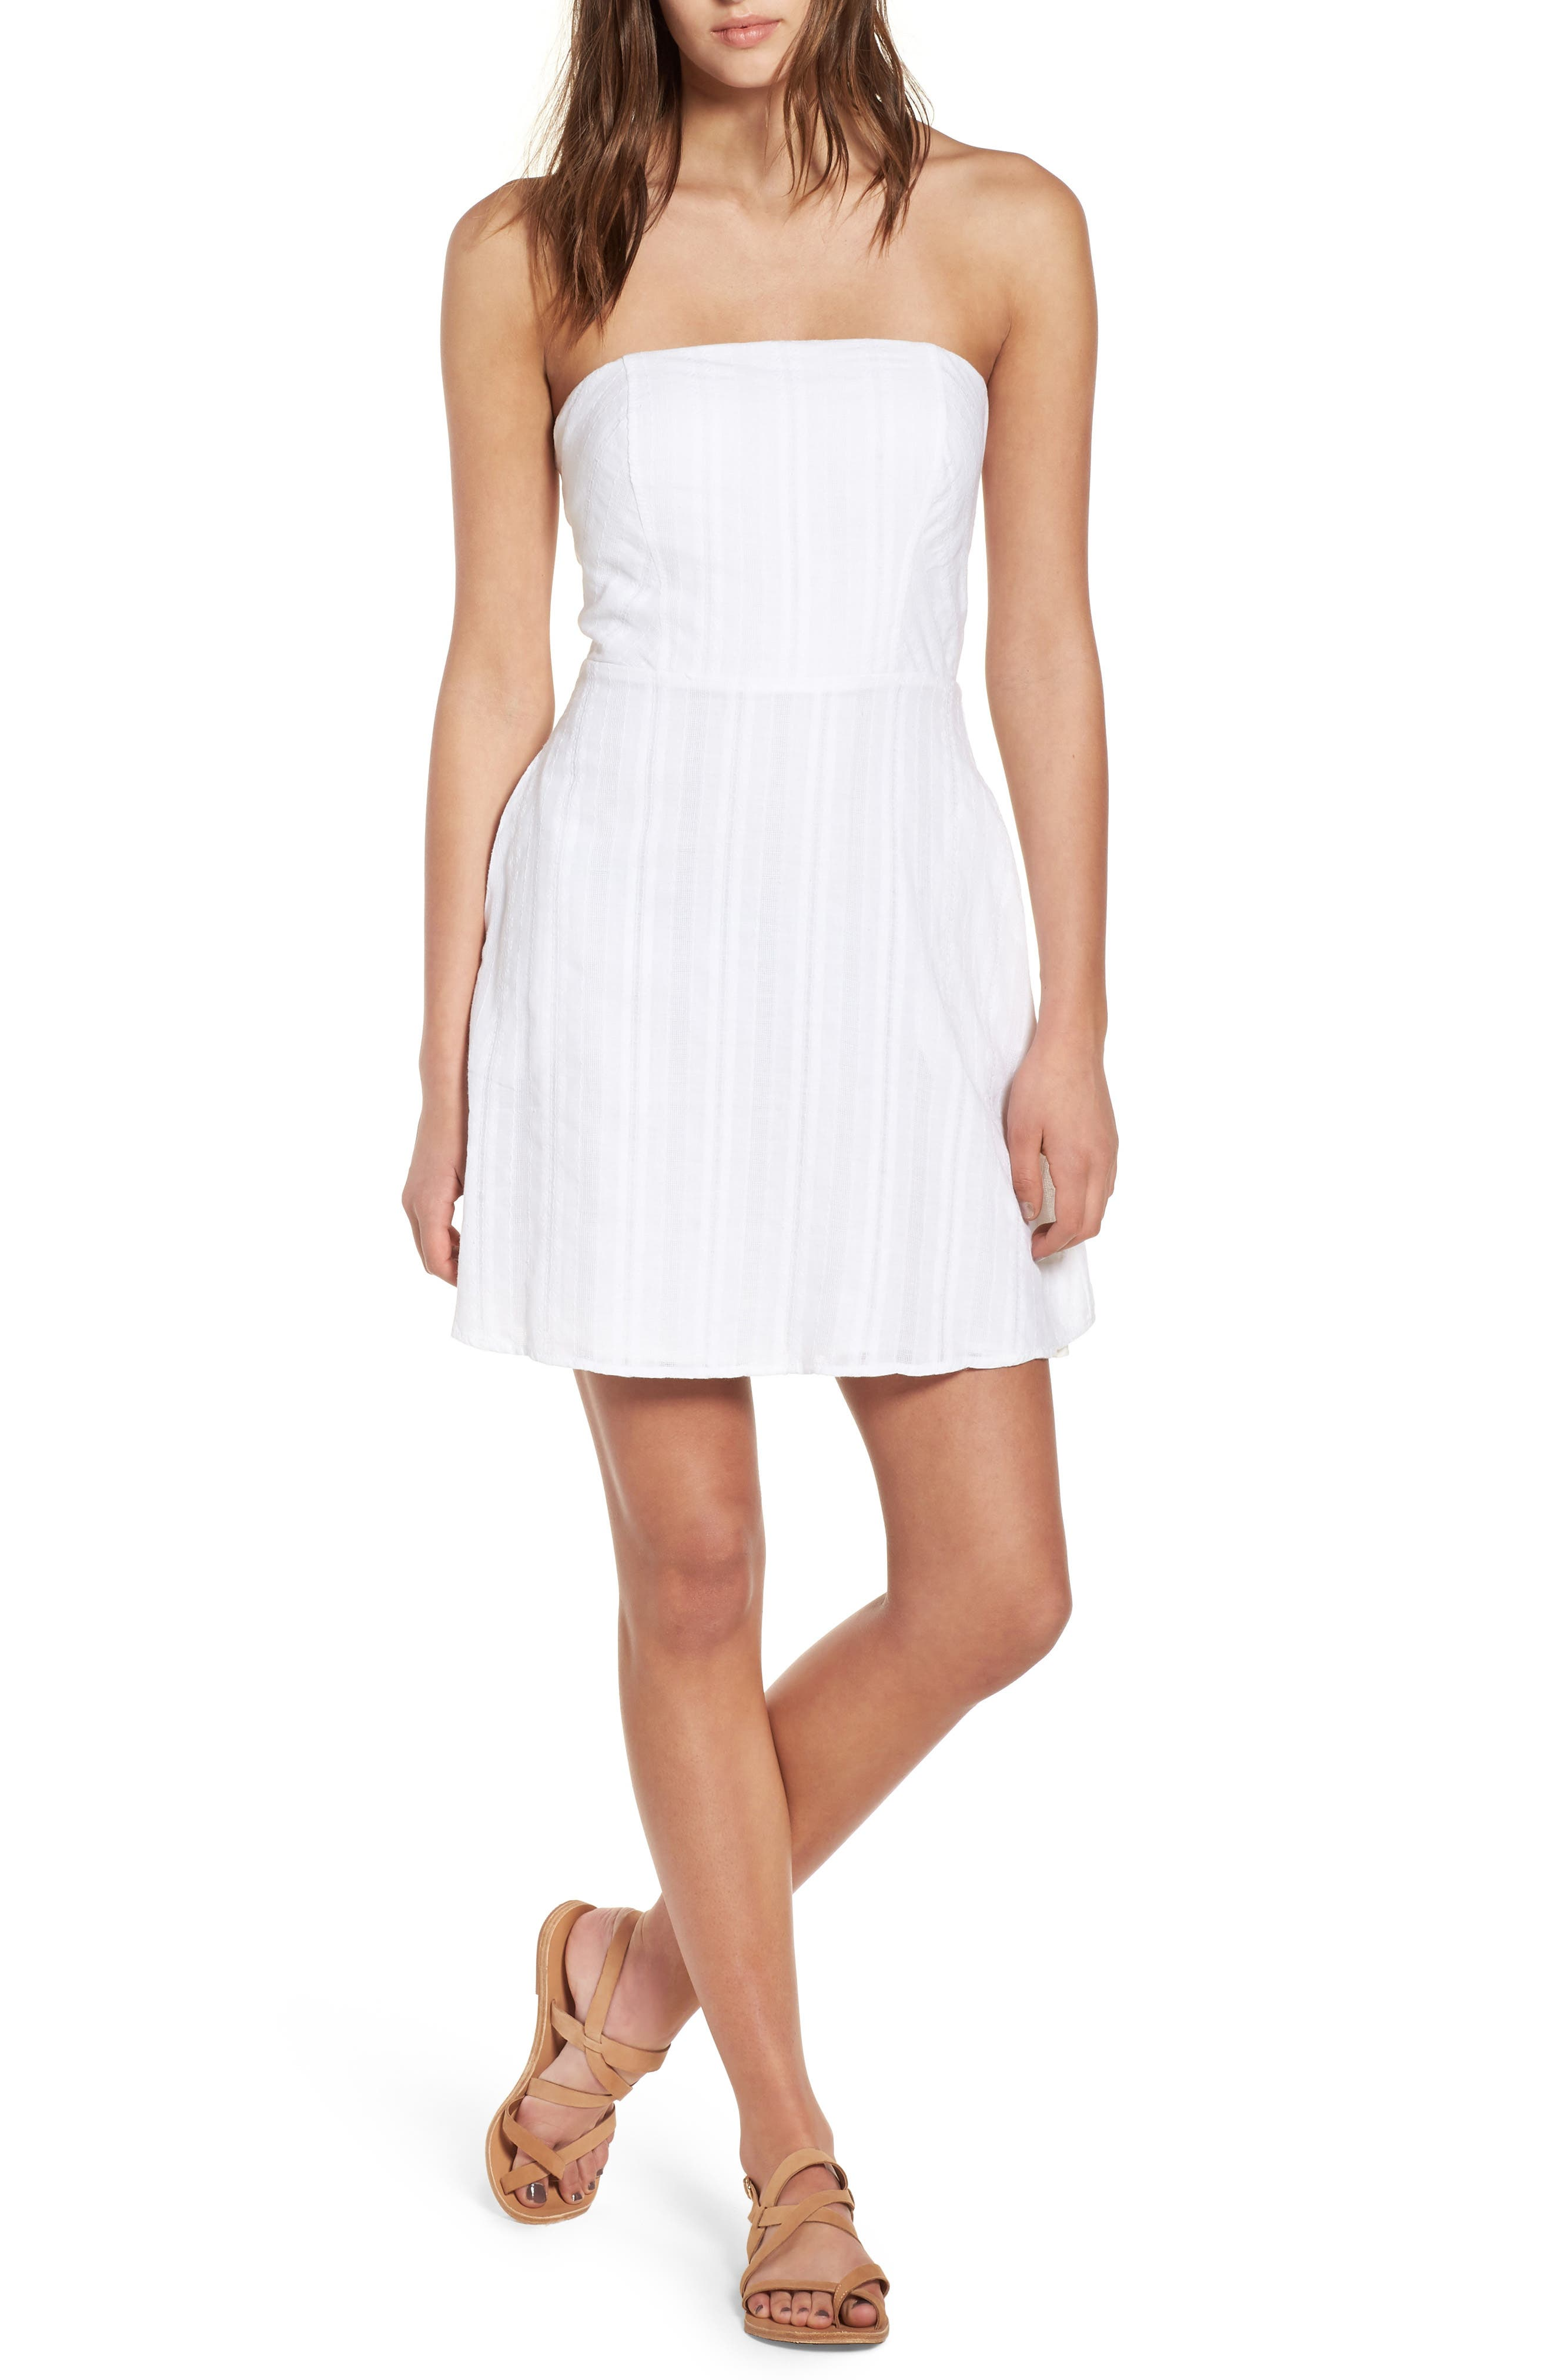 Strapless Tie Back Dress,                             Main thumbnail 1, color,                             White